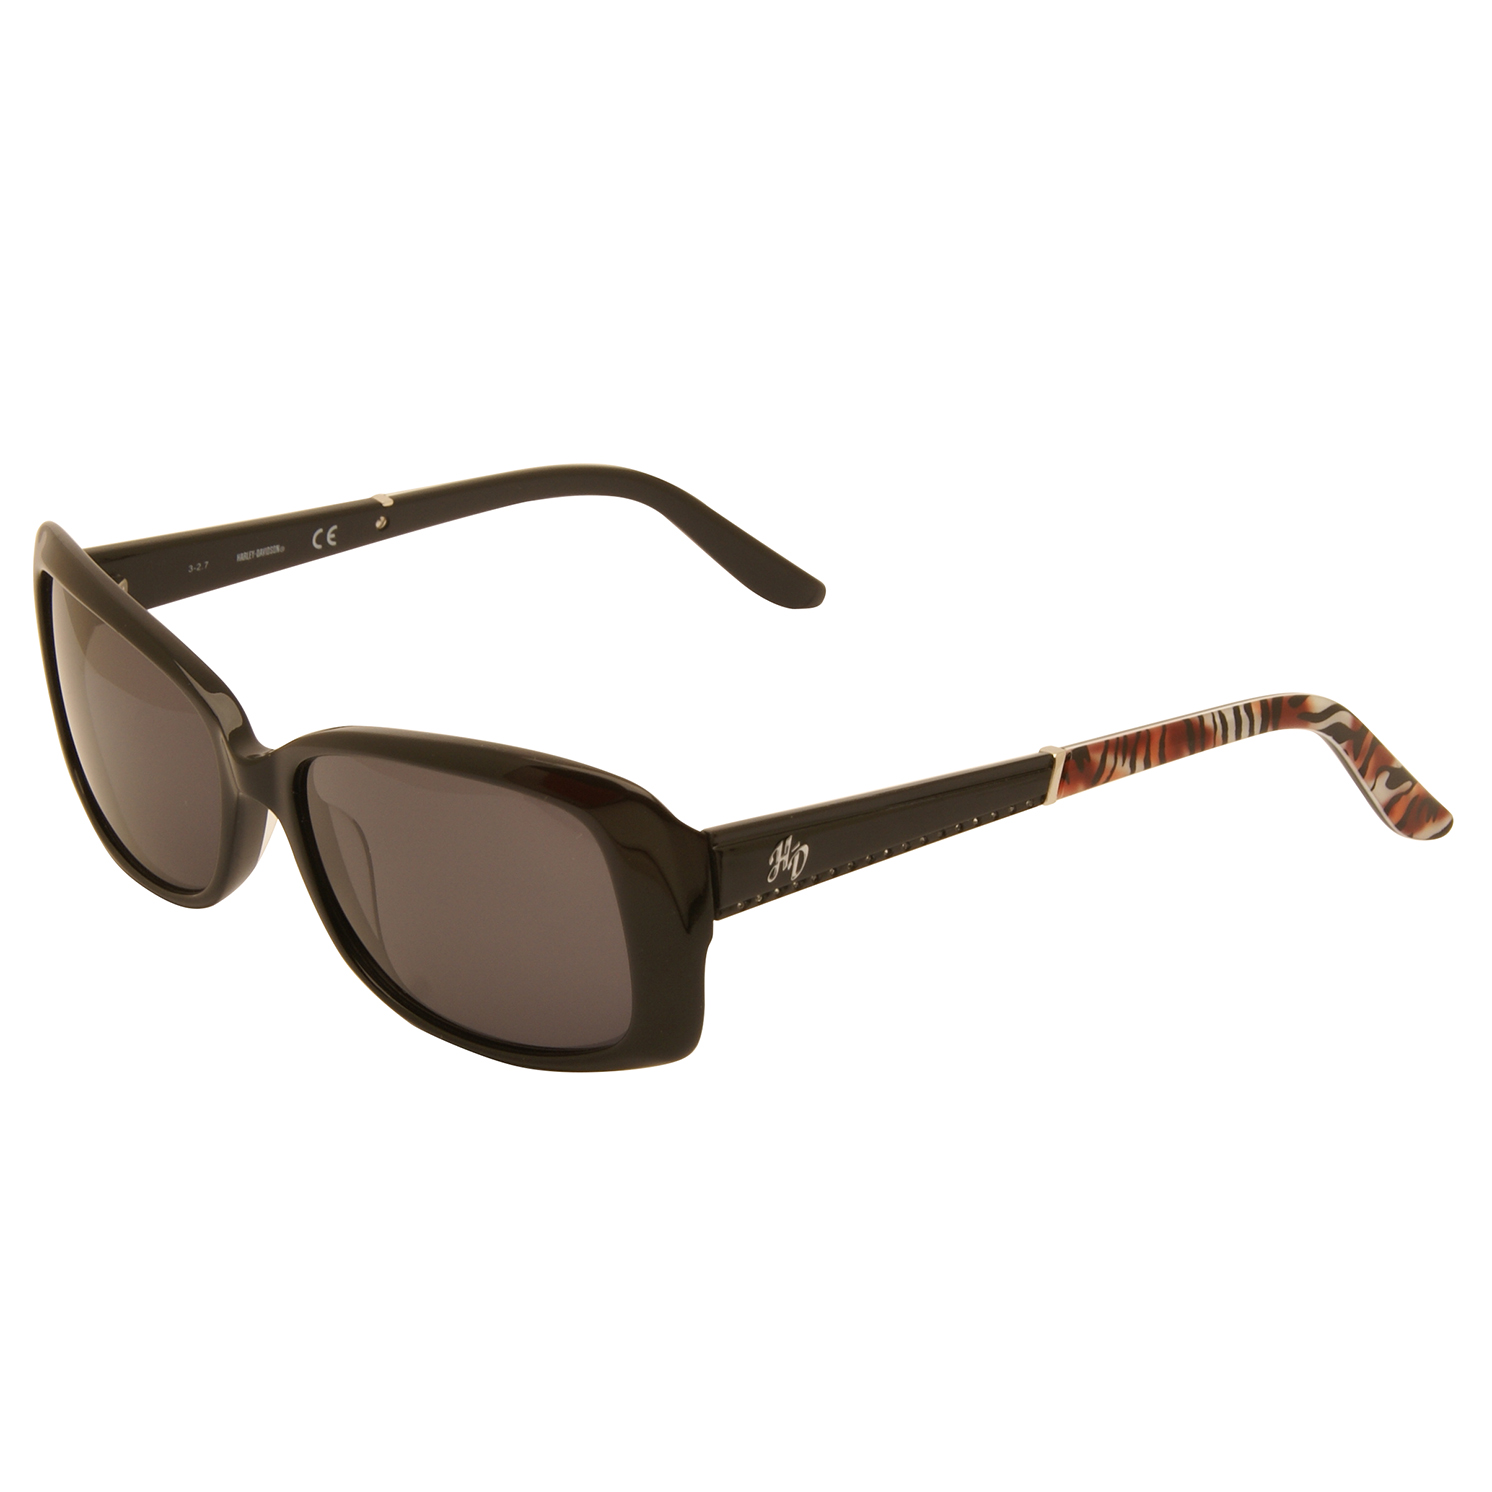 Harley Davidson – Black with Diamante Stones Classic Style Sunglasses with Case